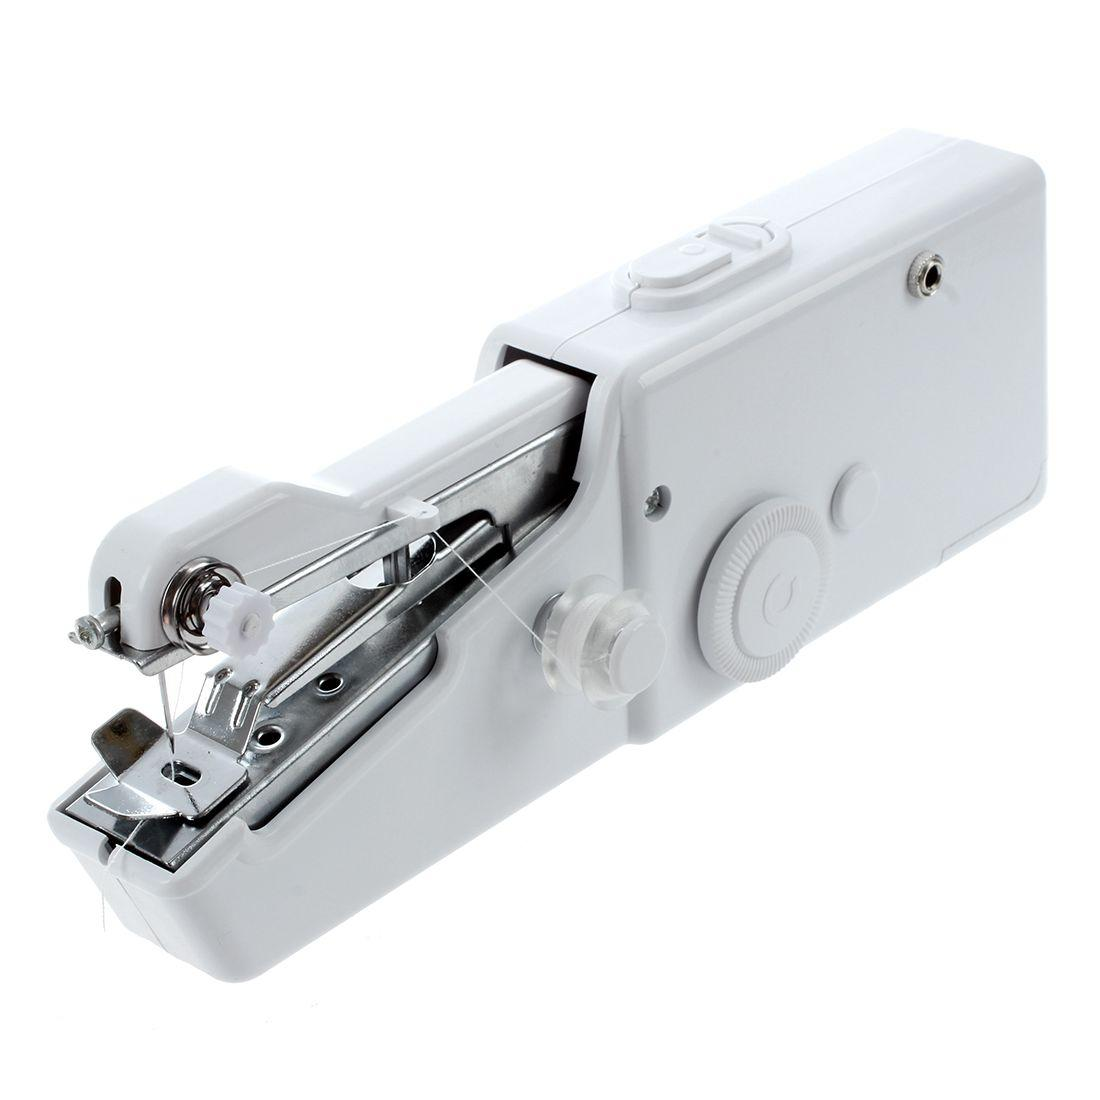 Best Mini Home Travel Desk Portable Sew Quick Hand-held needle Clothes Sewing Machine